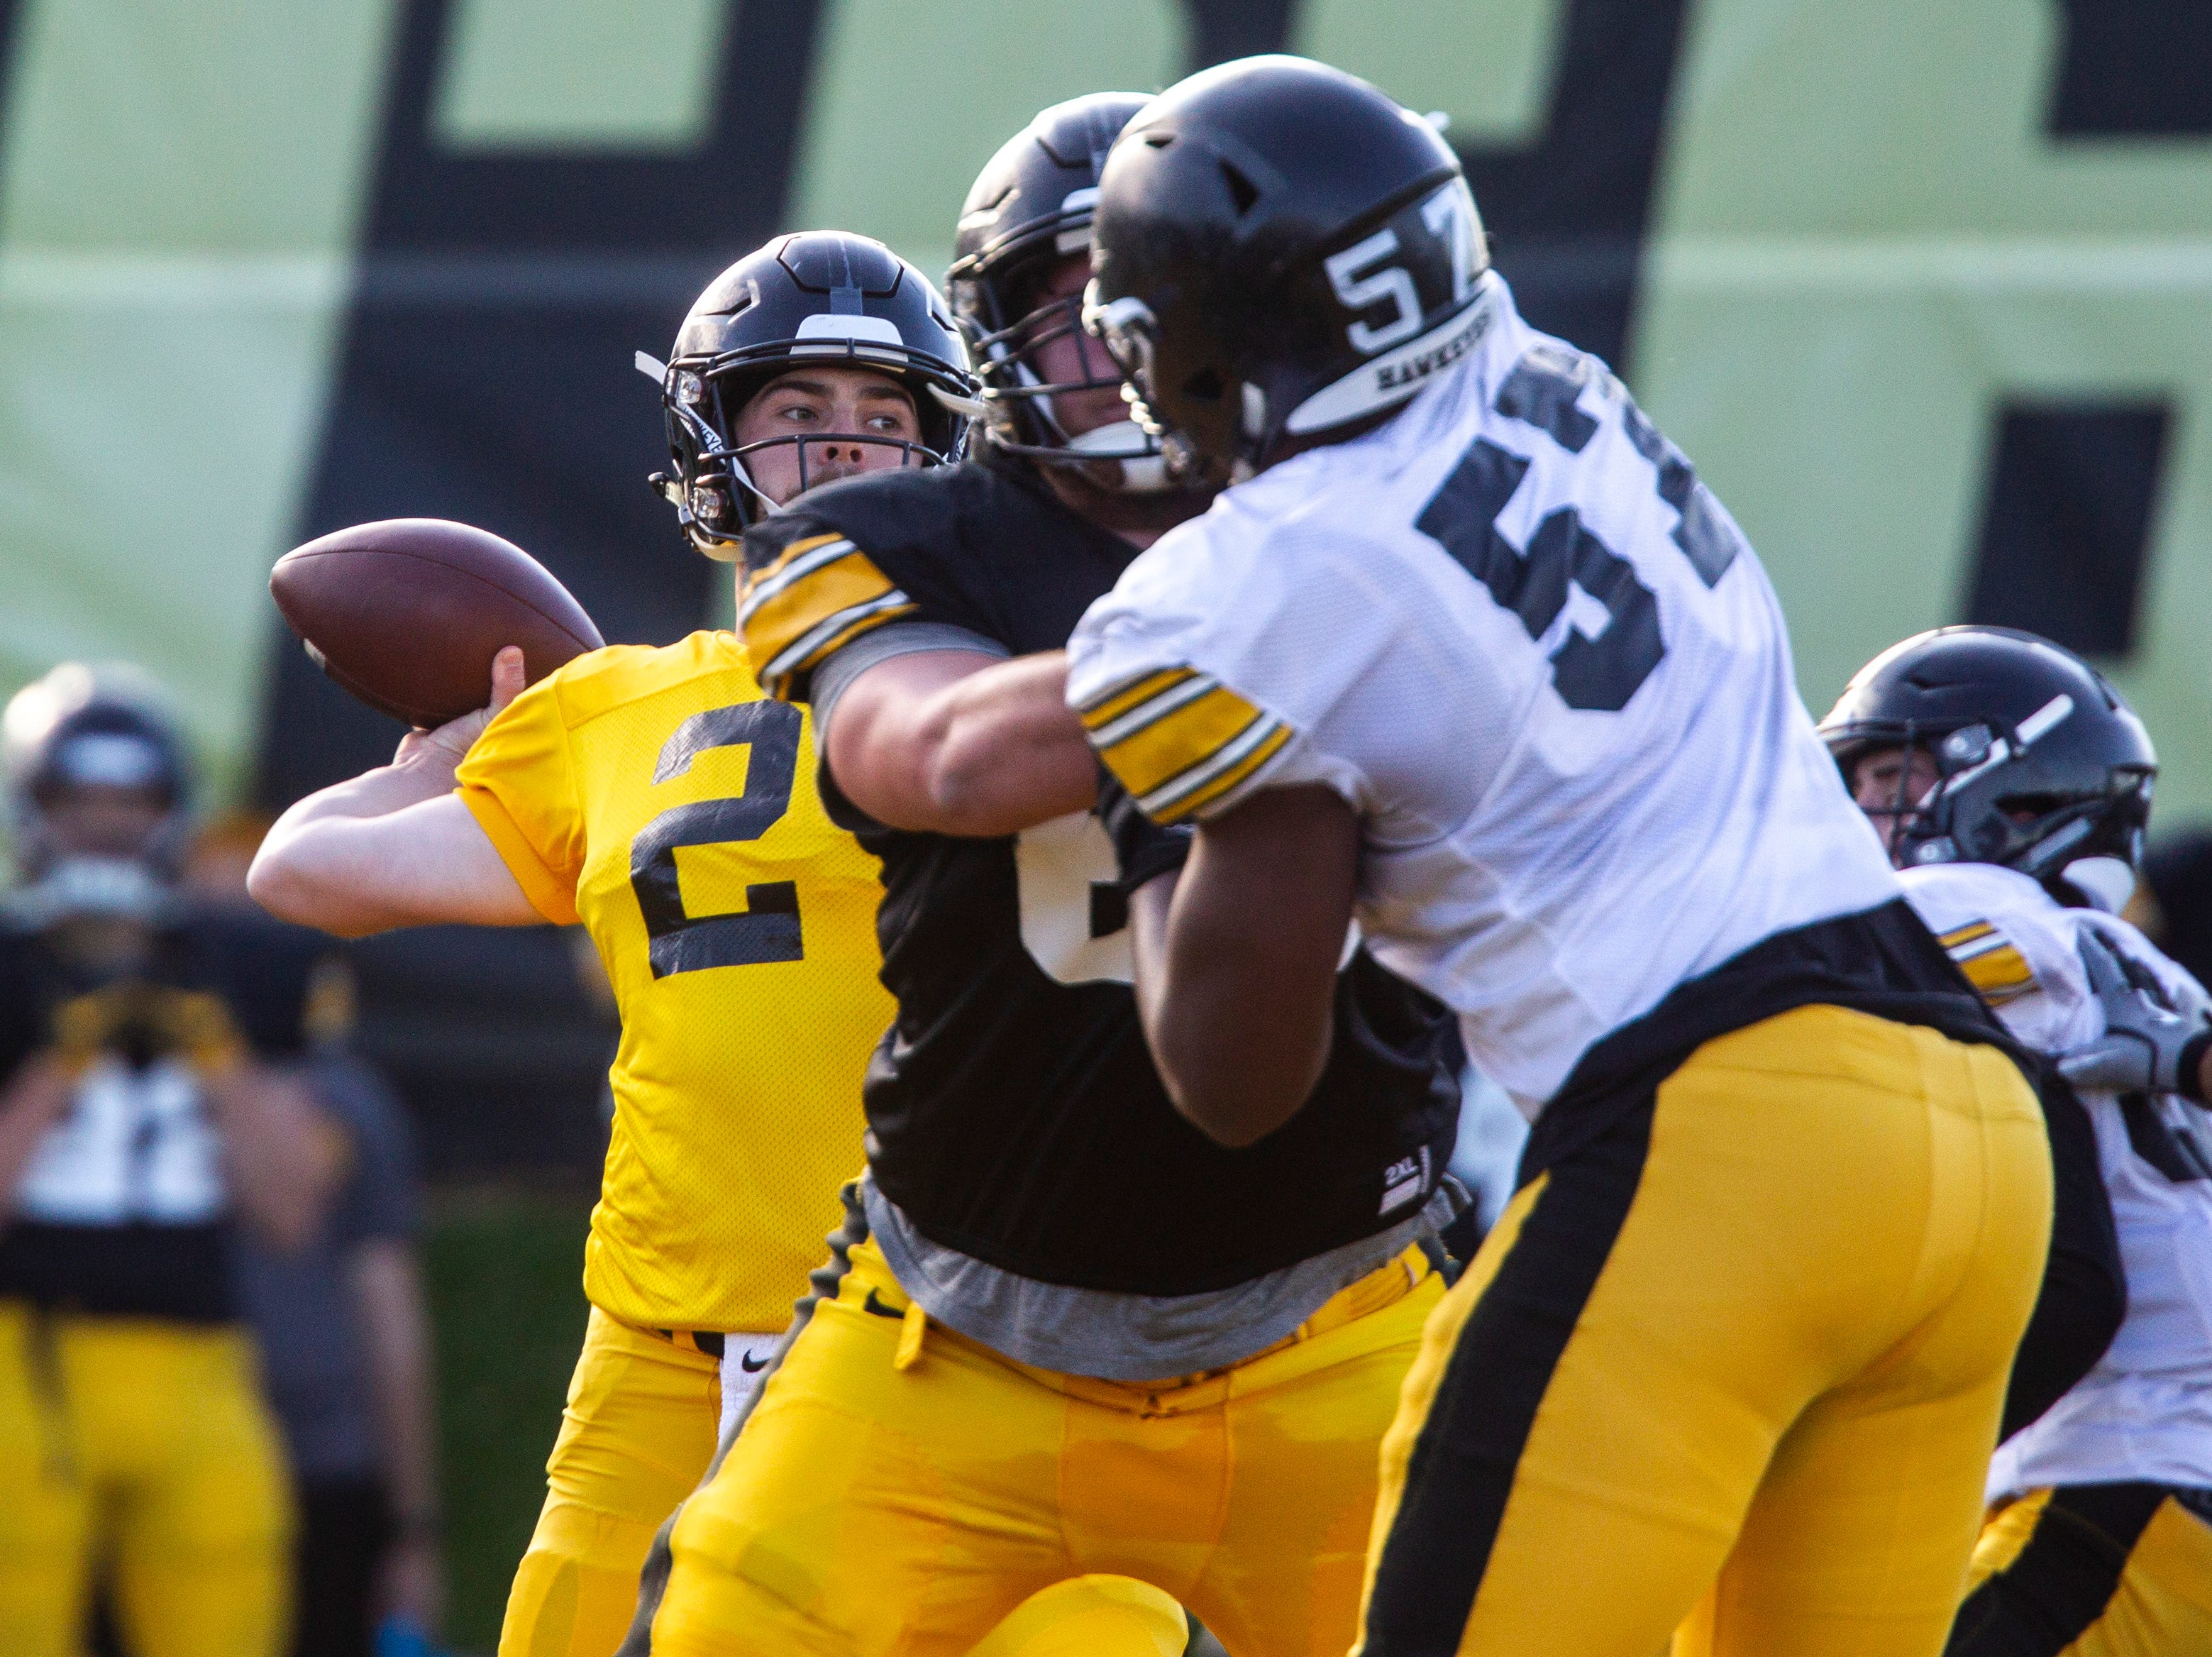 Iowa quarterback Peyton Mansell (2) passes during the final spring football practice, Friday, April 26, 2019, at the University of Iowa outdoor practice facility in Iowa City, Iowa.